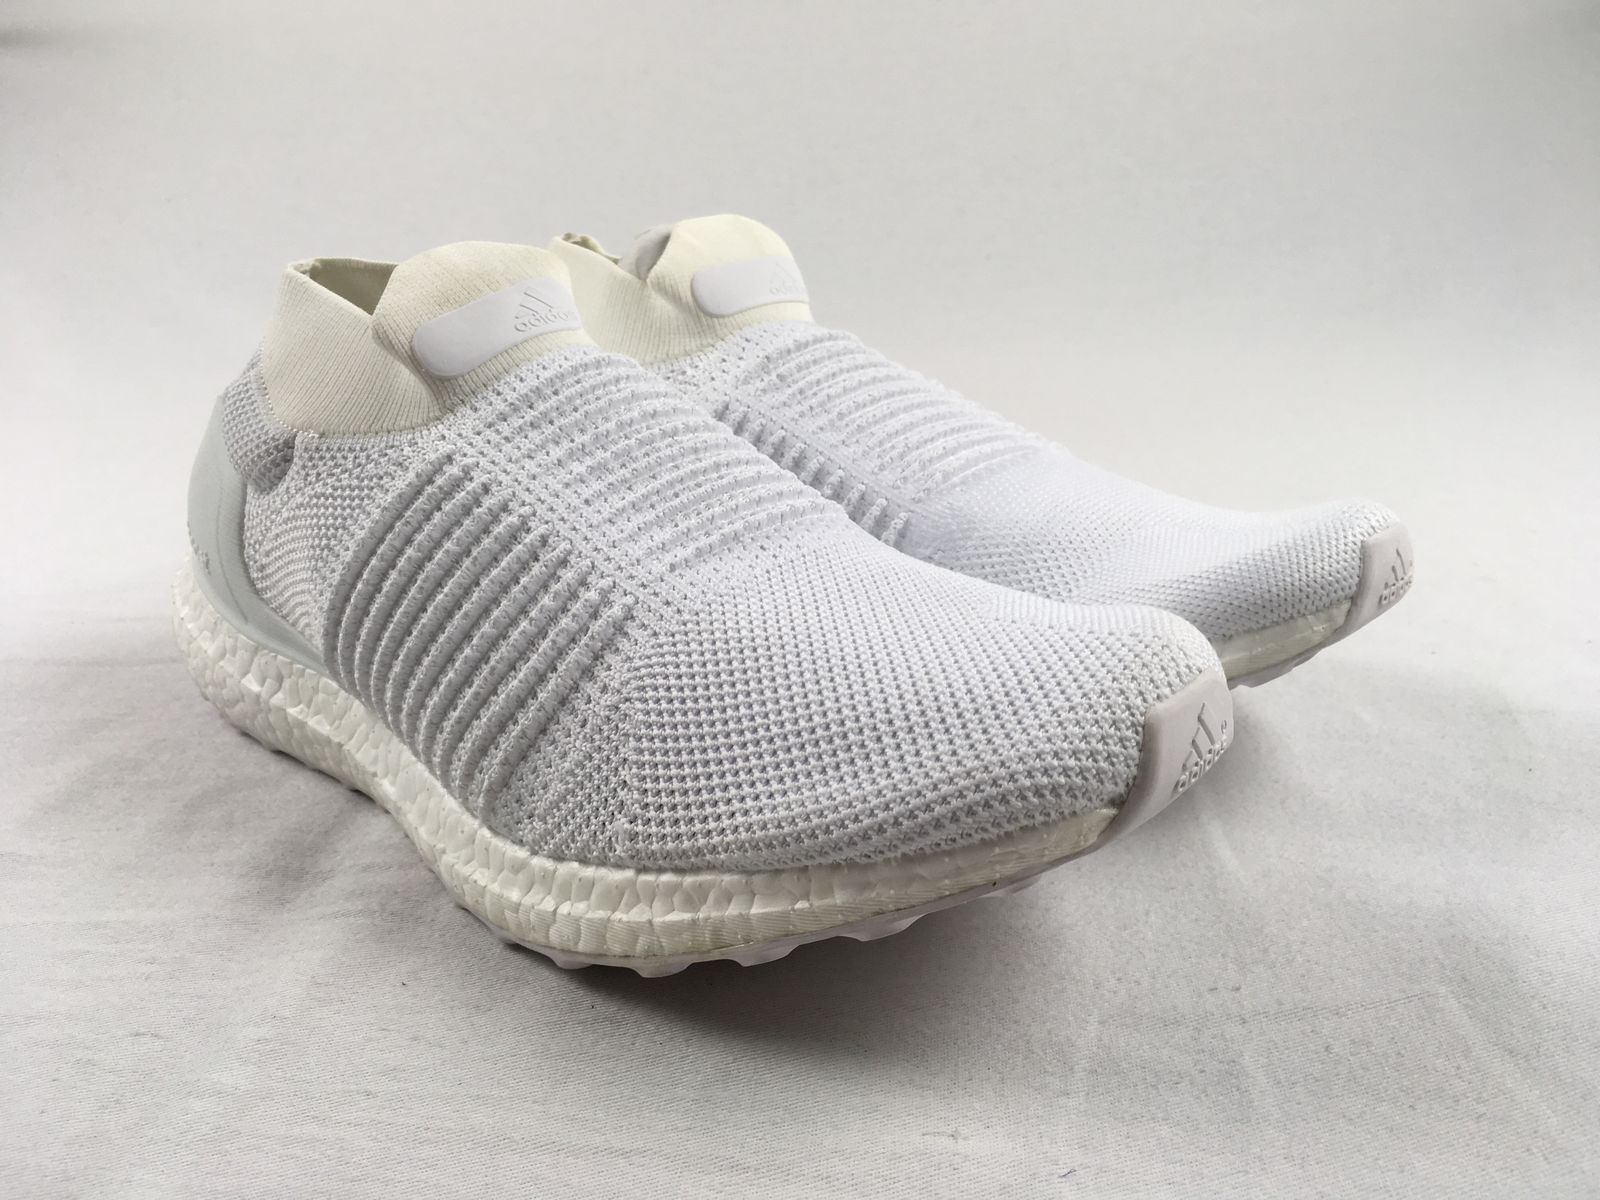 Adidas Ultra Boost Laceless - Running, Cross Training (Men's Multiple Sizes)